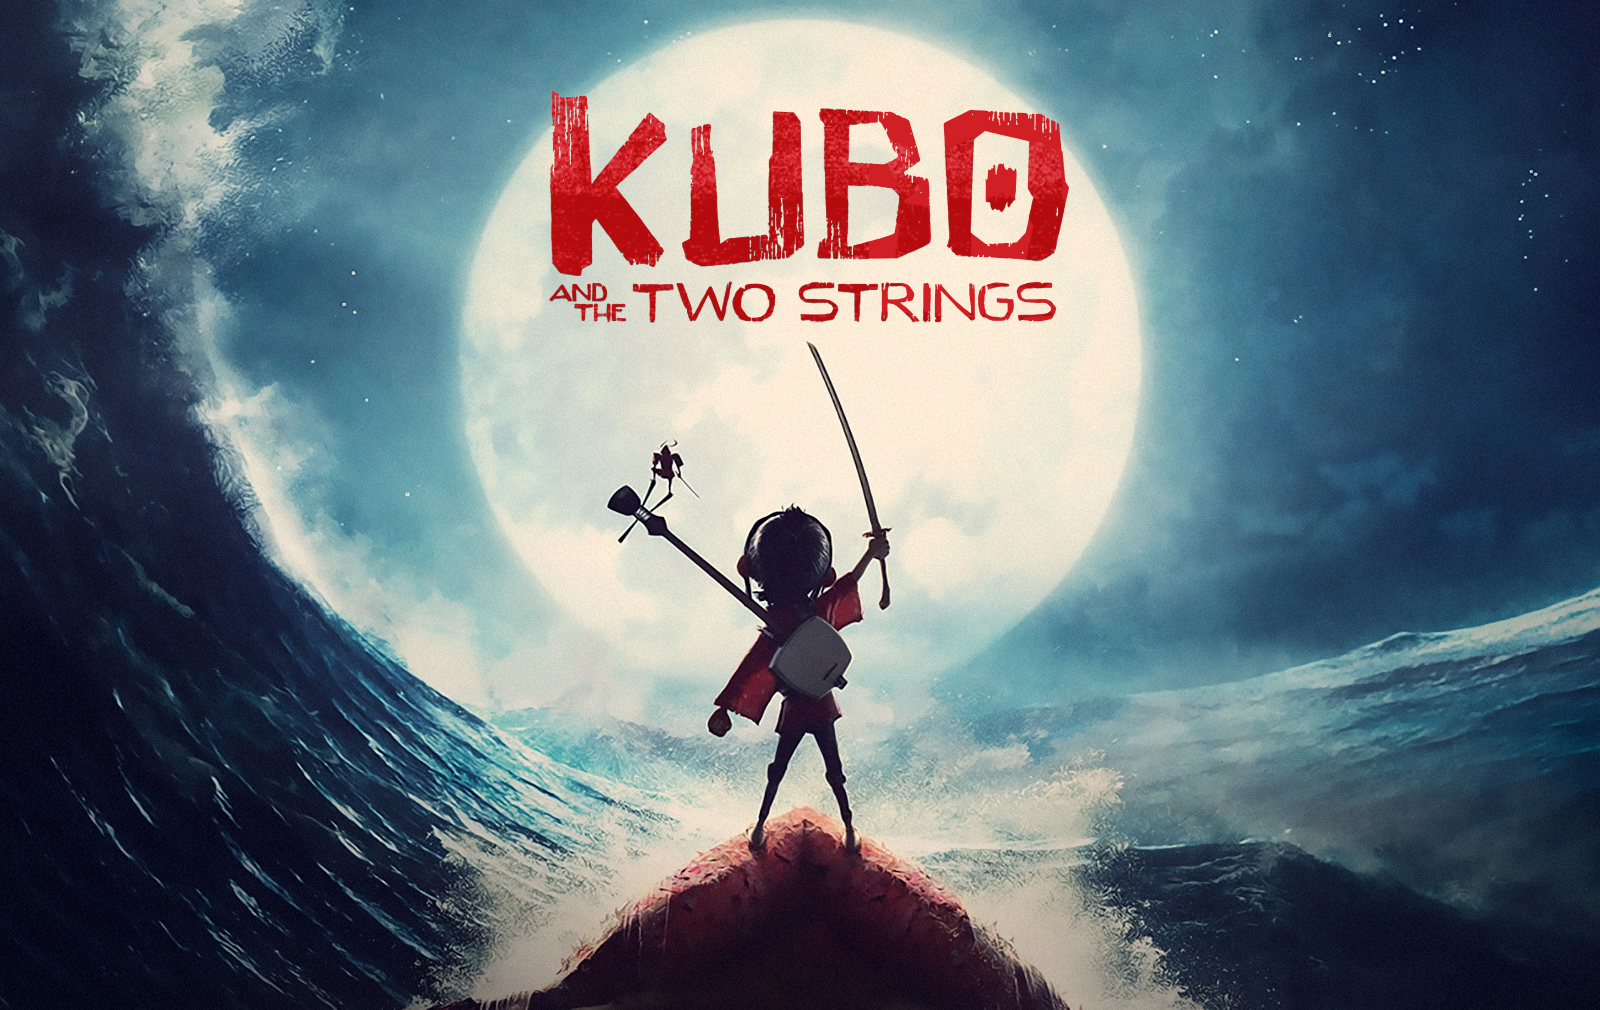 kubo-and-the-two-strings_animation-movies